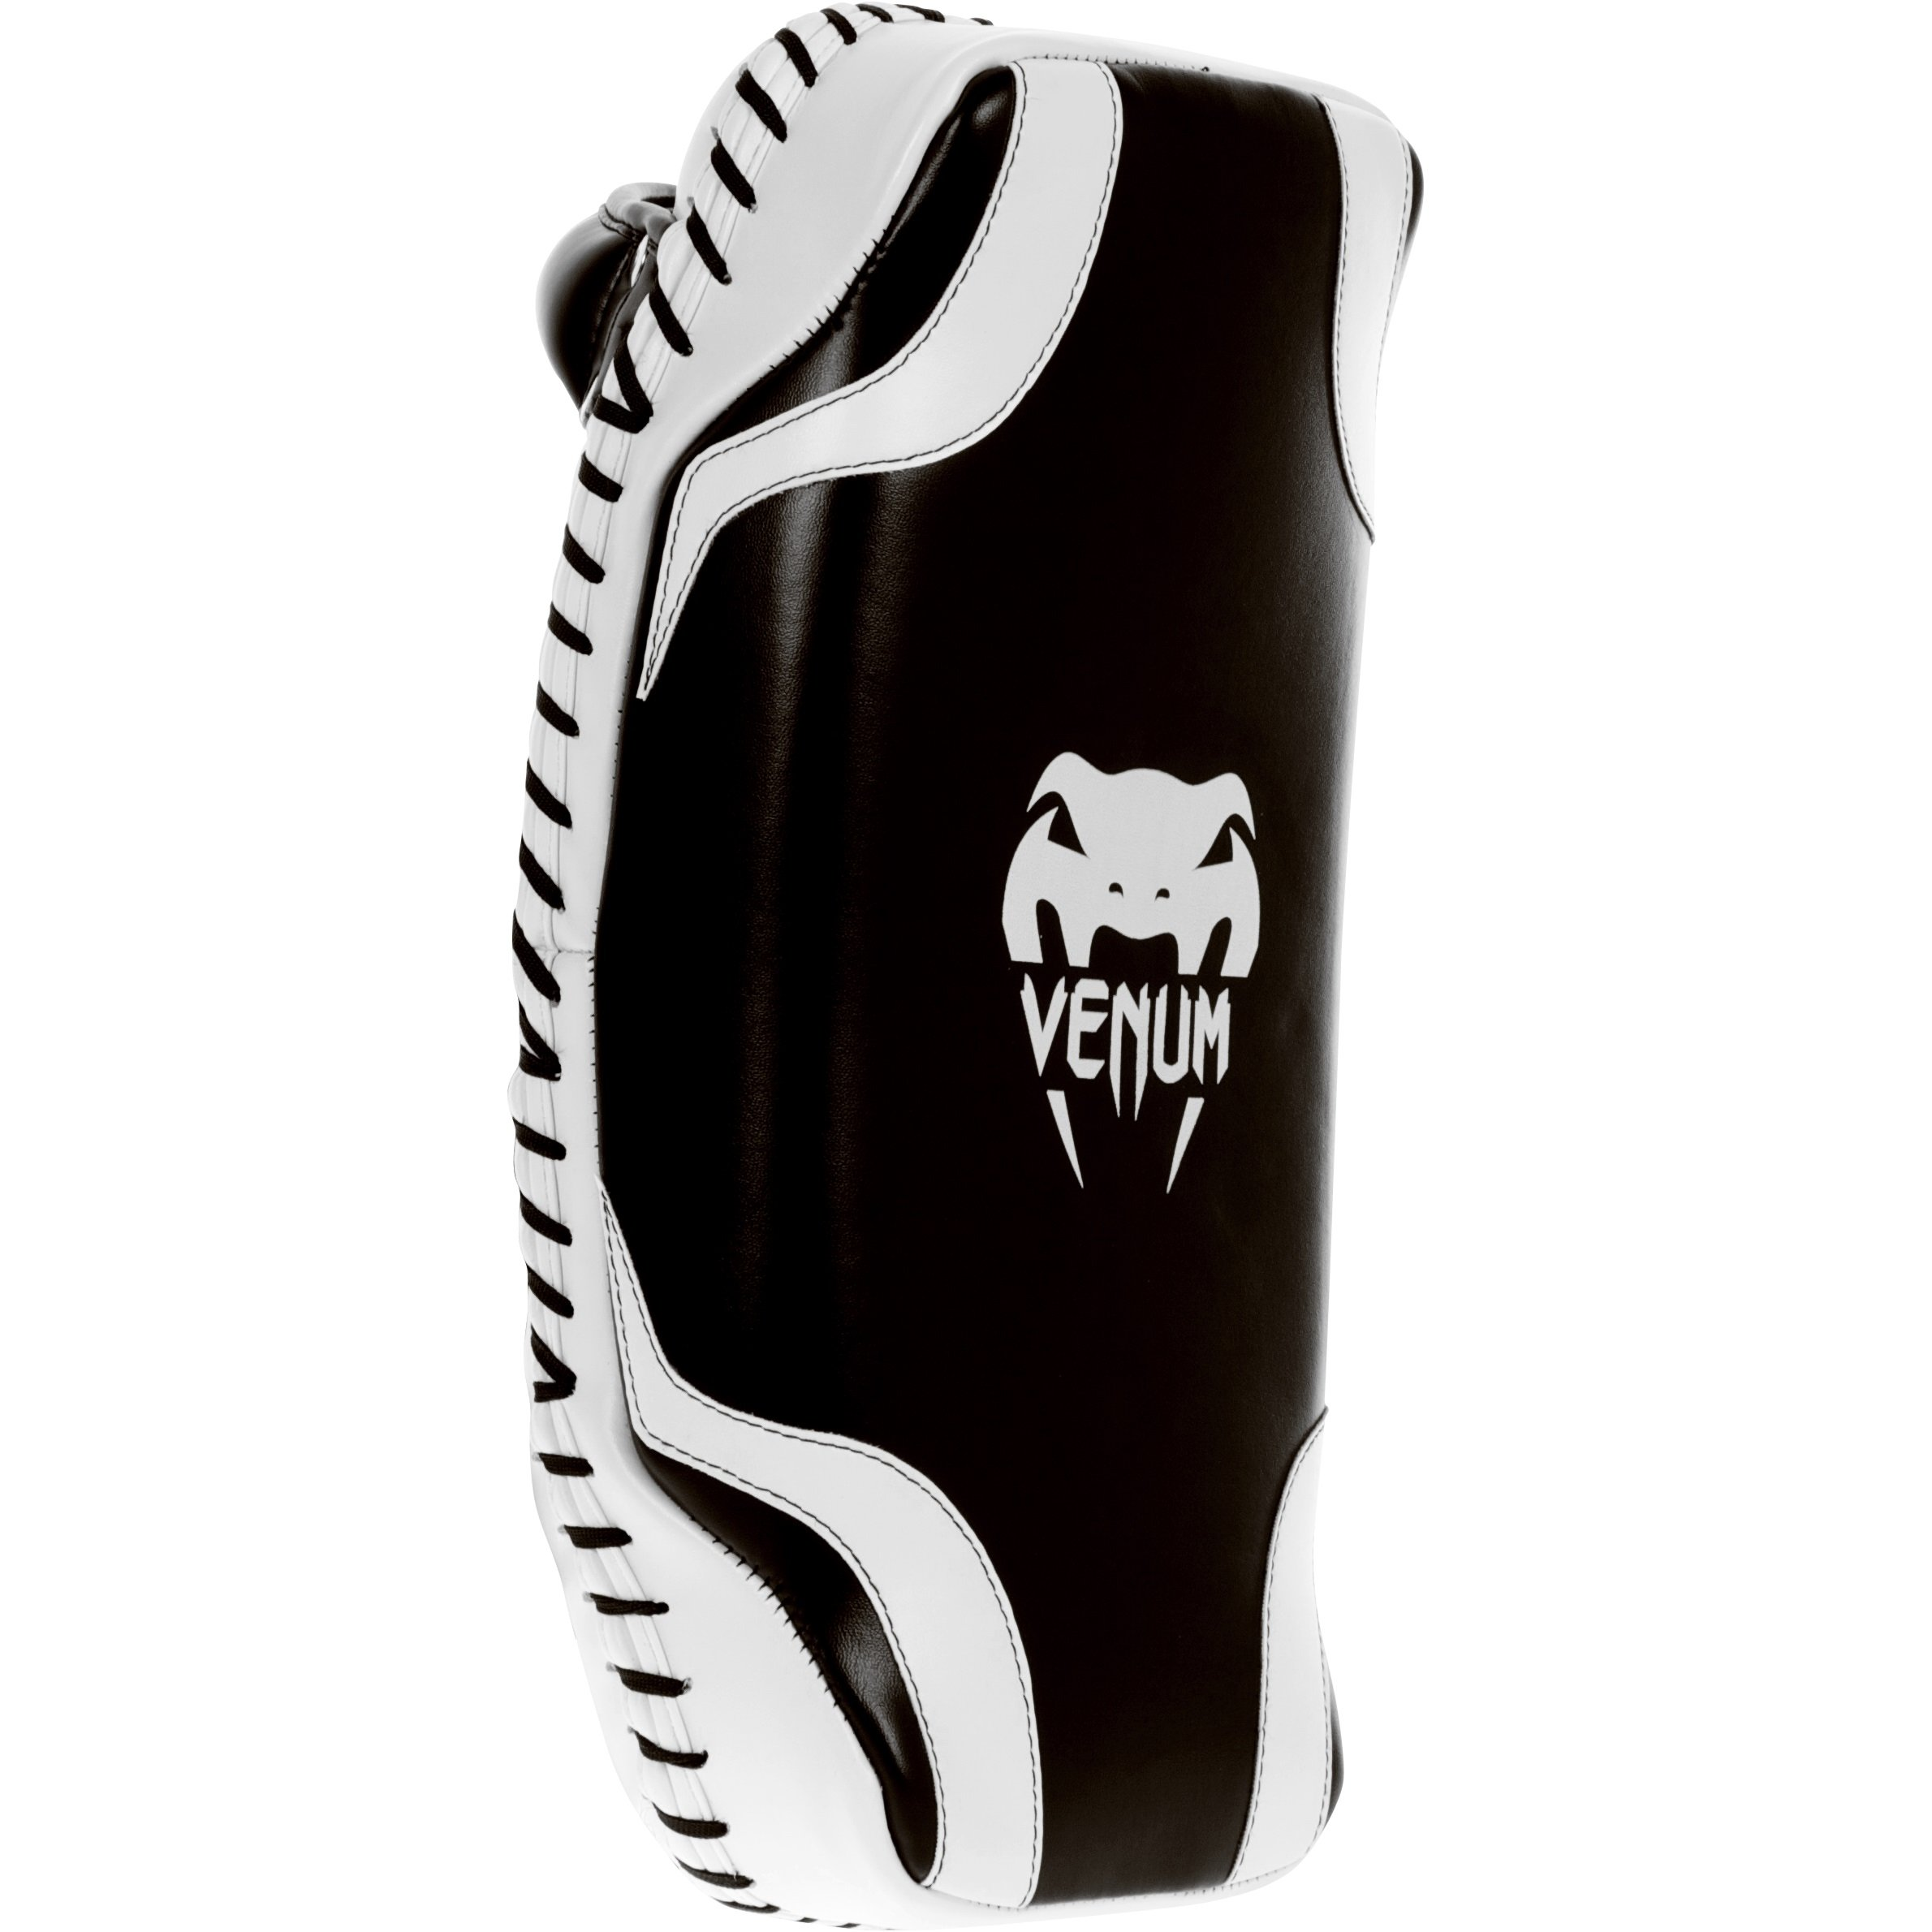 Venum Absolute Kick Pads, Black/White by Venum